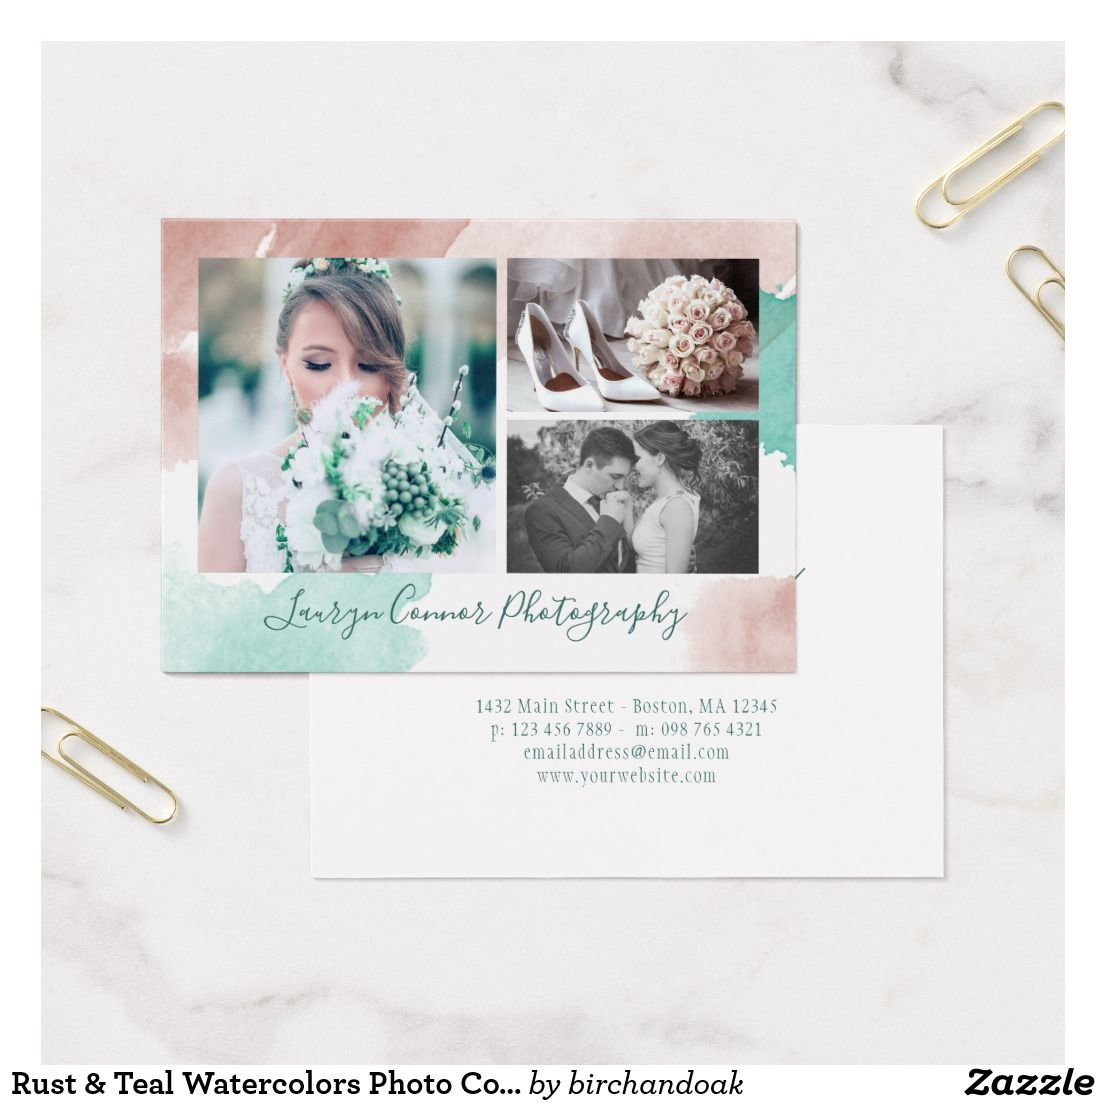 Rust teal watercolors photo collage photographer business card rust teal watercolors photo collage photographer business card colourmoves